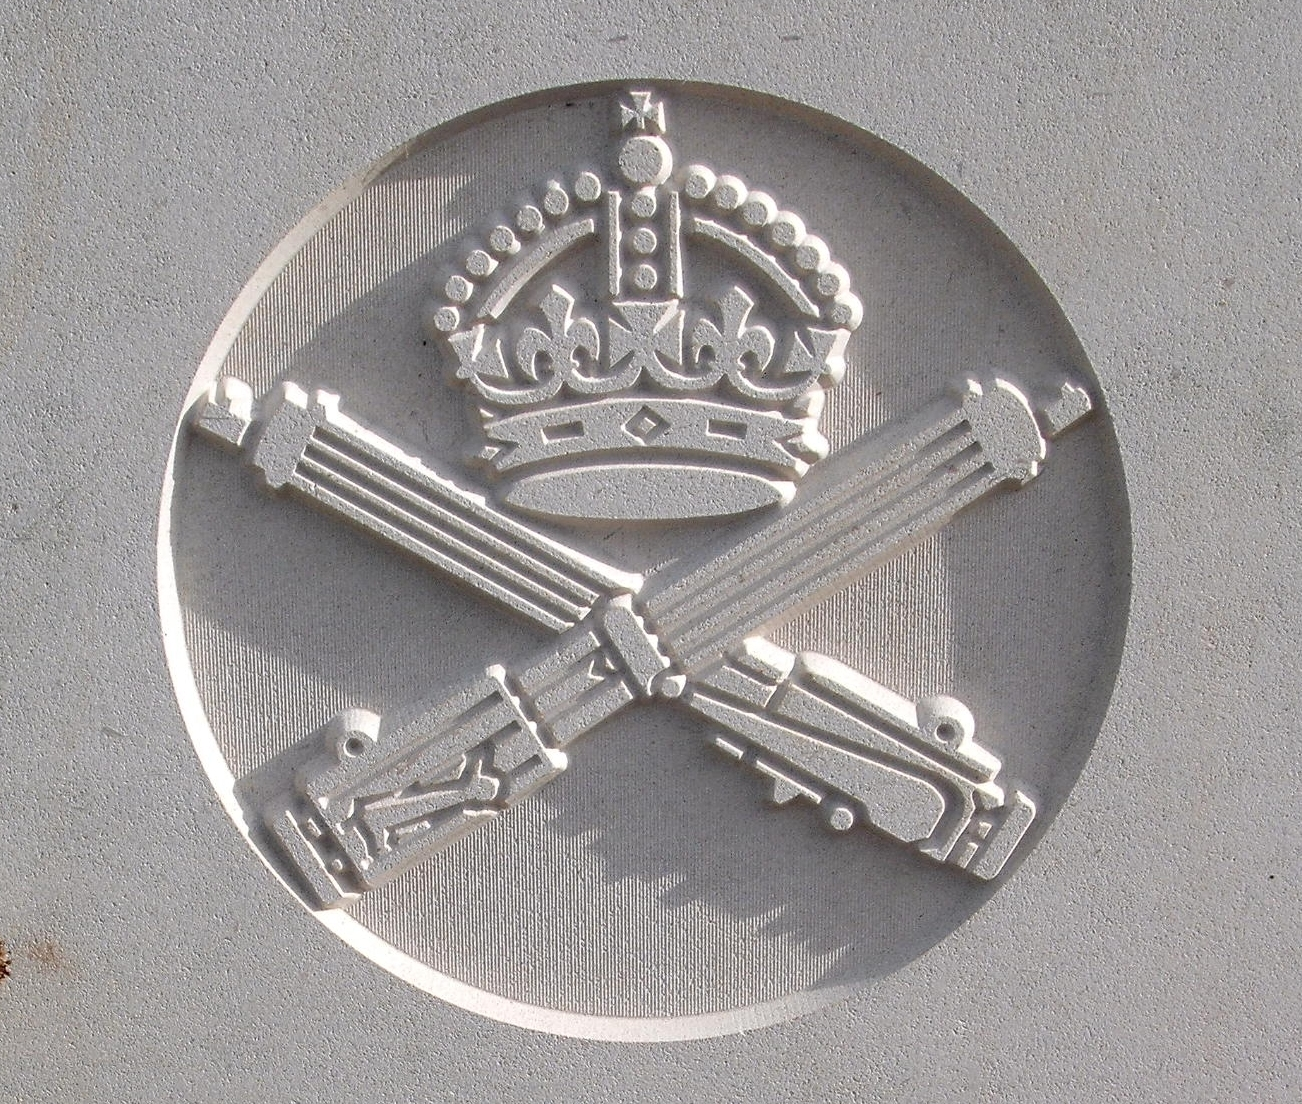 Capbadge of the Machine Gun Corps